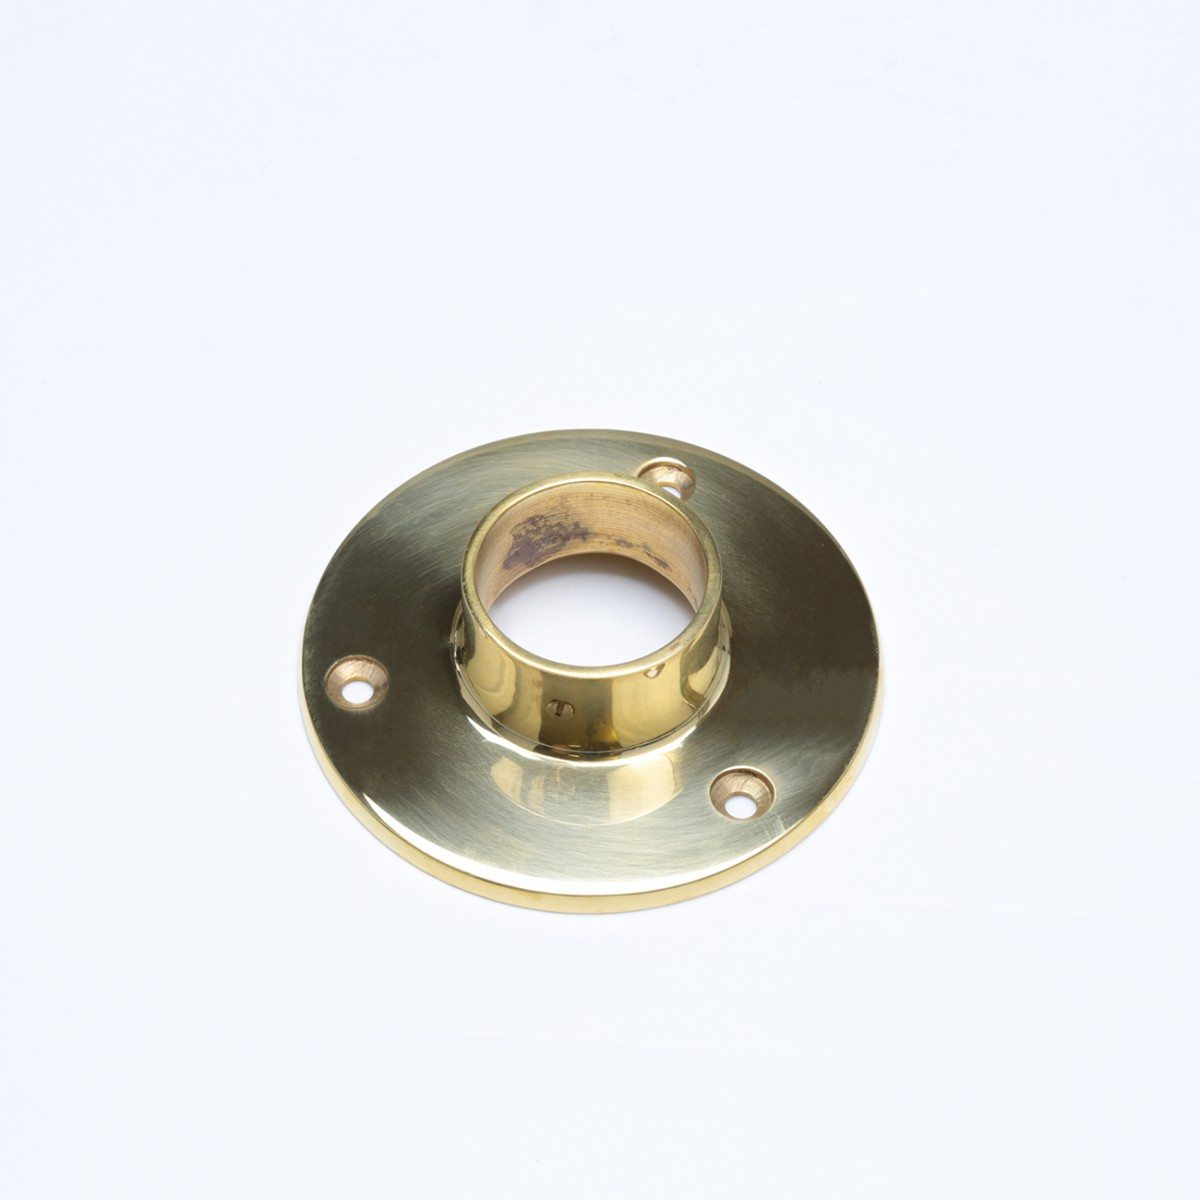 Bar Bracket Polished Solid Brass 4 Flange Fit 1.5 Tube Bar Bracket Bar Hardware Mounting Brackets